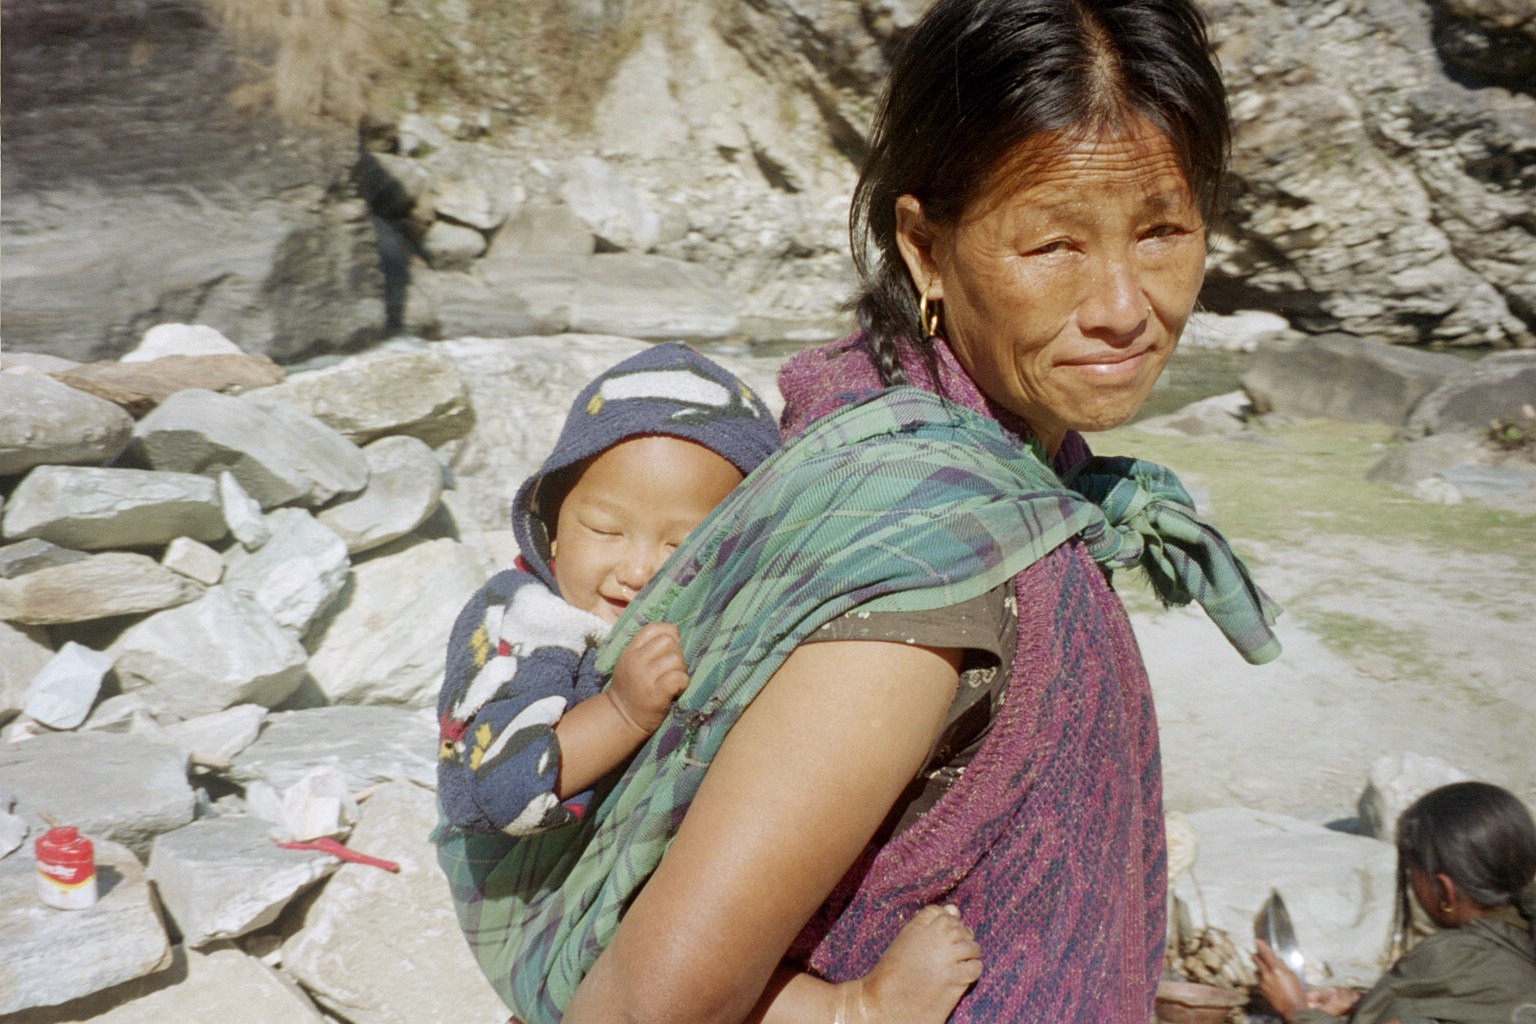 A person carrying a baby on their back